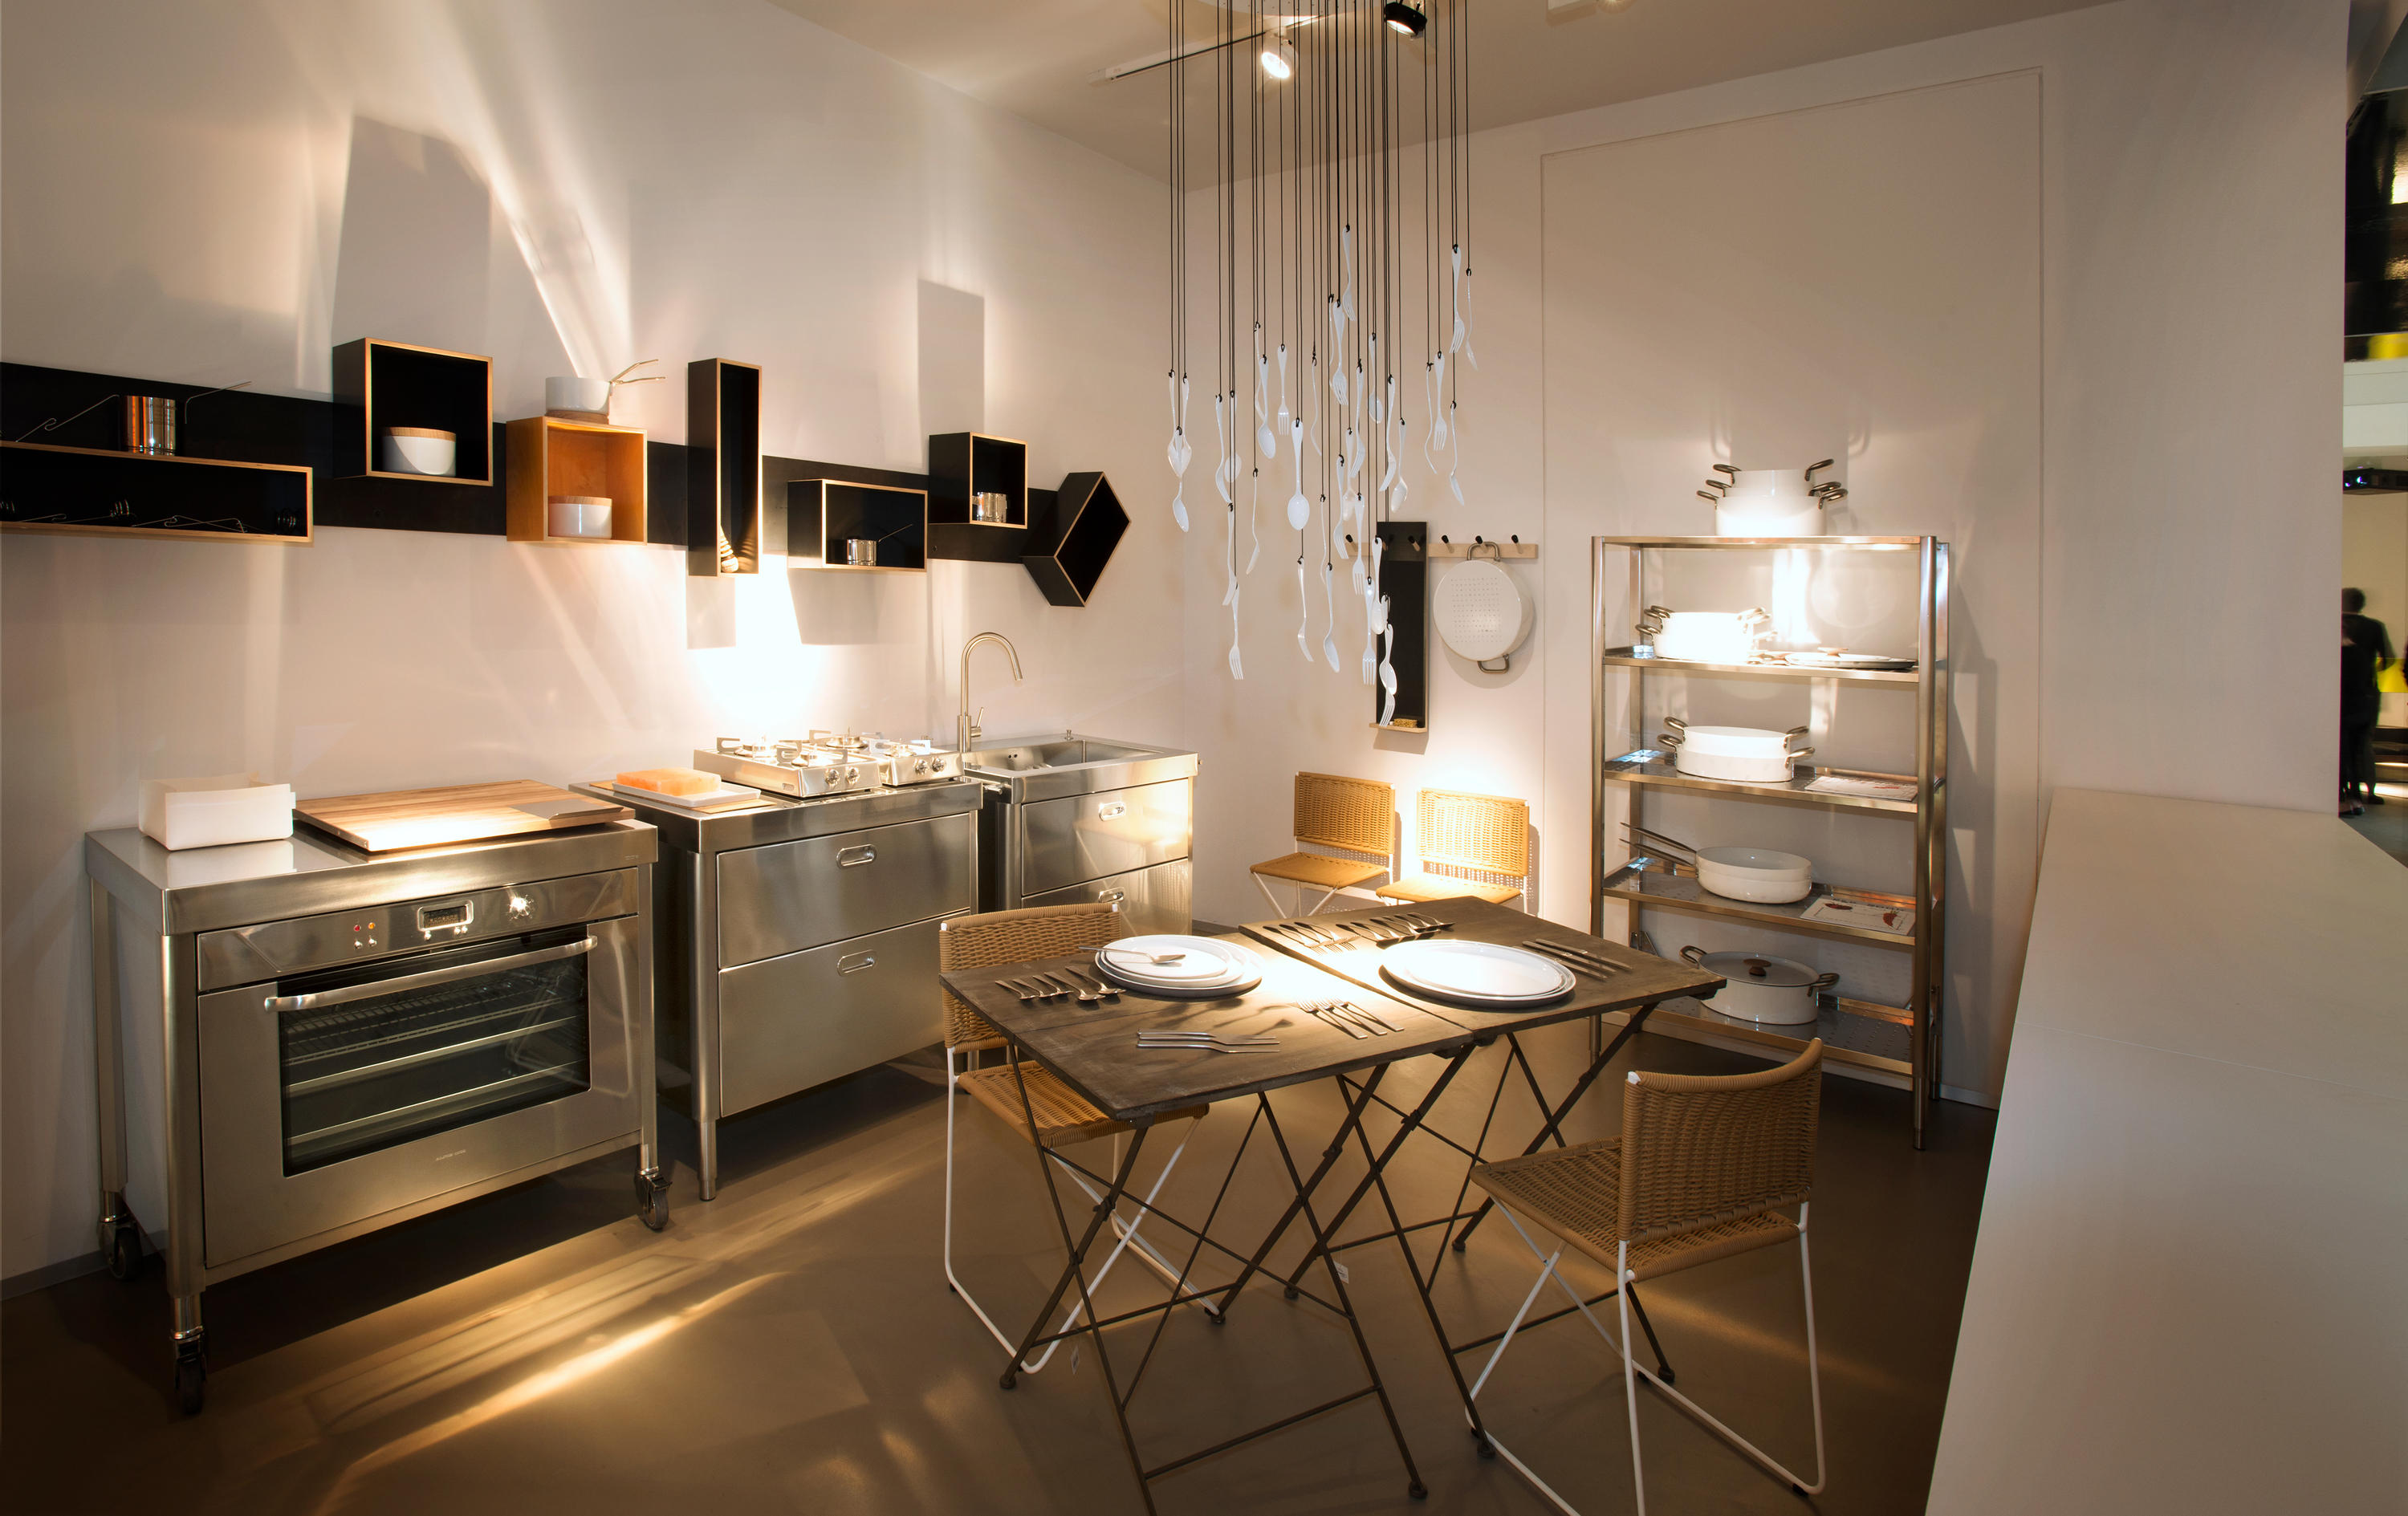 70 KITCHENS - Dishwashers from ALPES-INOX | Architonic